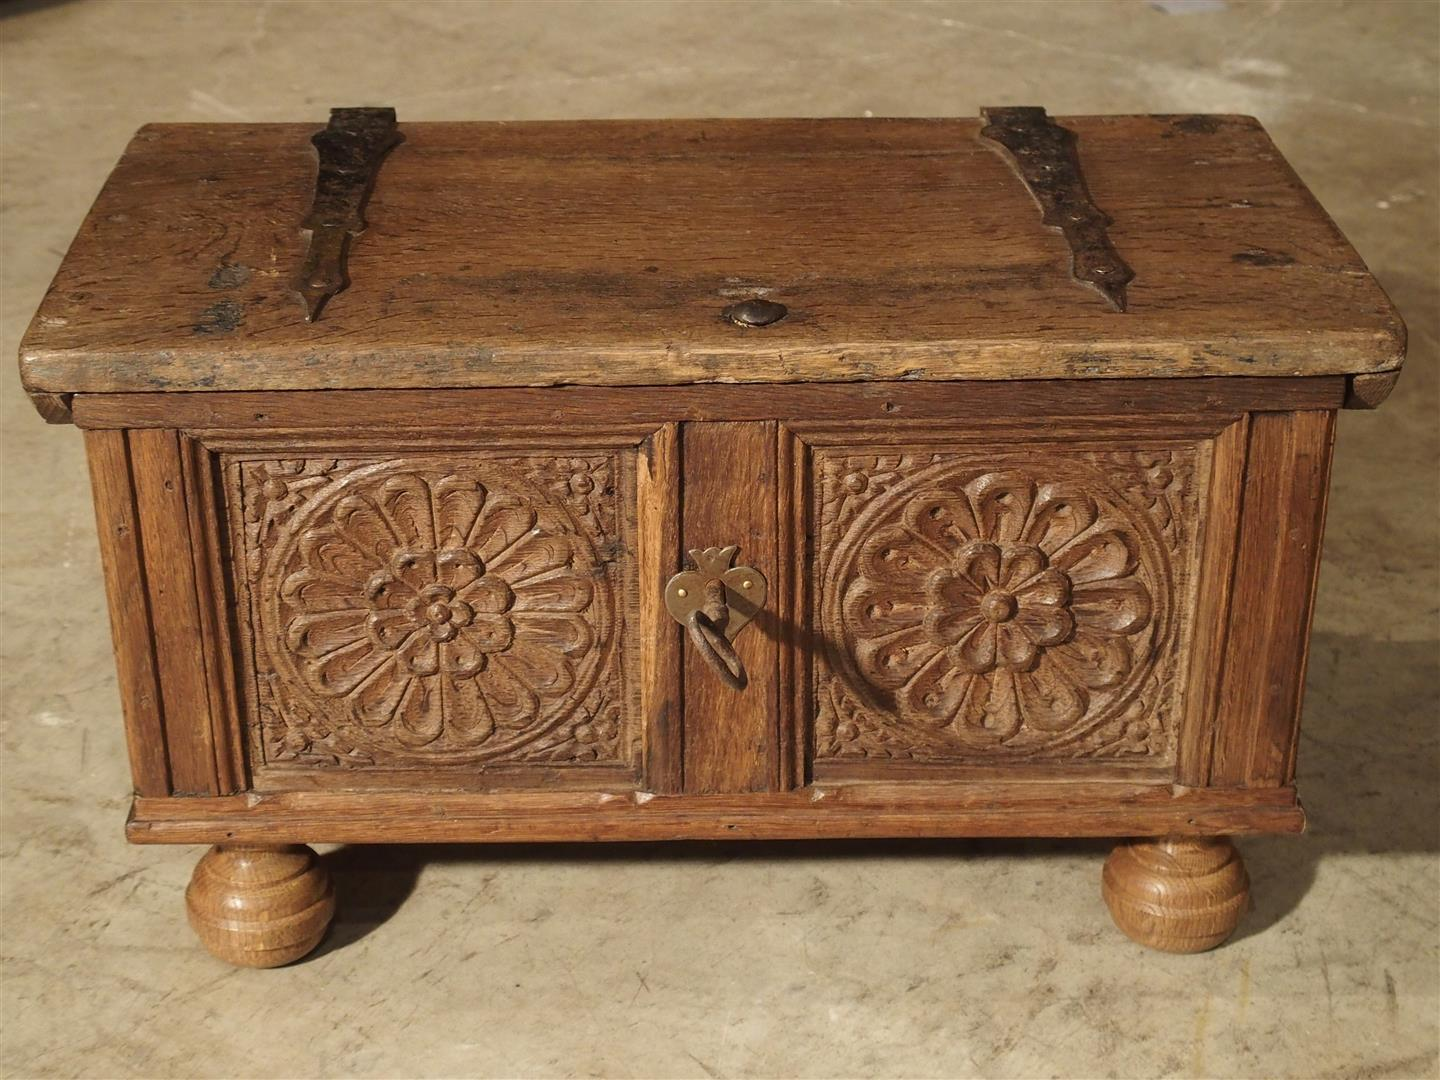 Charmant Brown Small Antique Oak Table Trunk From Spain, 17th Century For Sale    Image 8